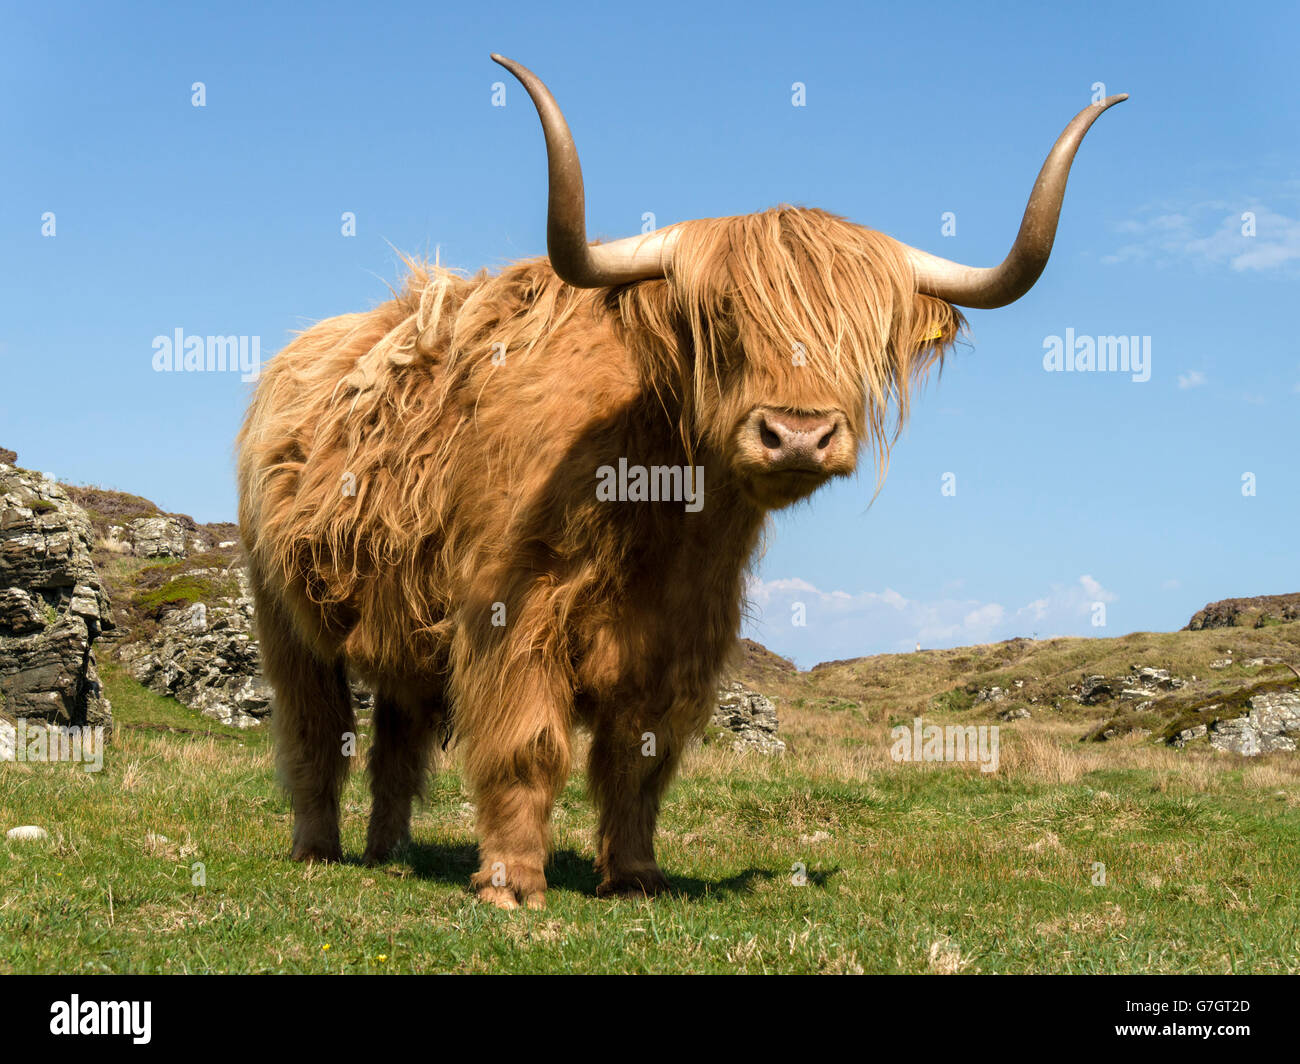 Scottish Highland cow, à l'île de Colonsay, Ecosse, Royaume-Uni. Photo Stock